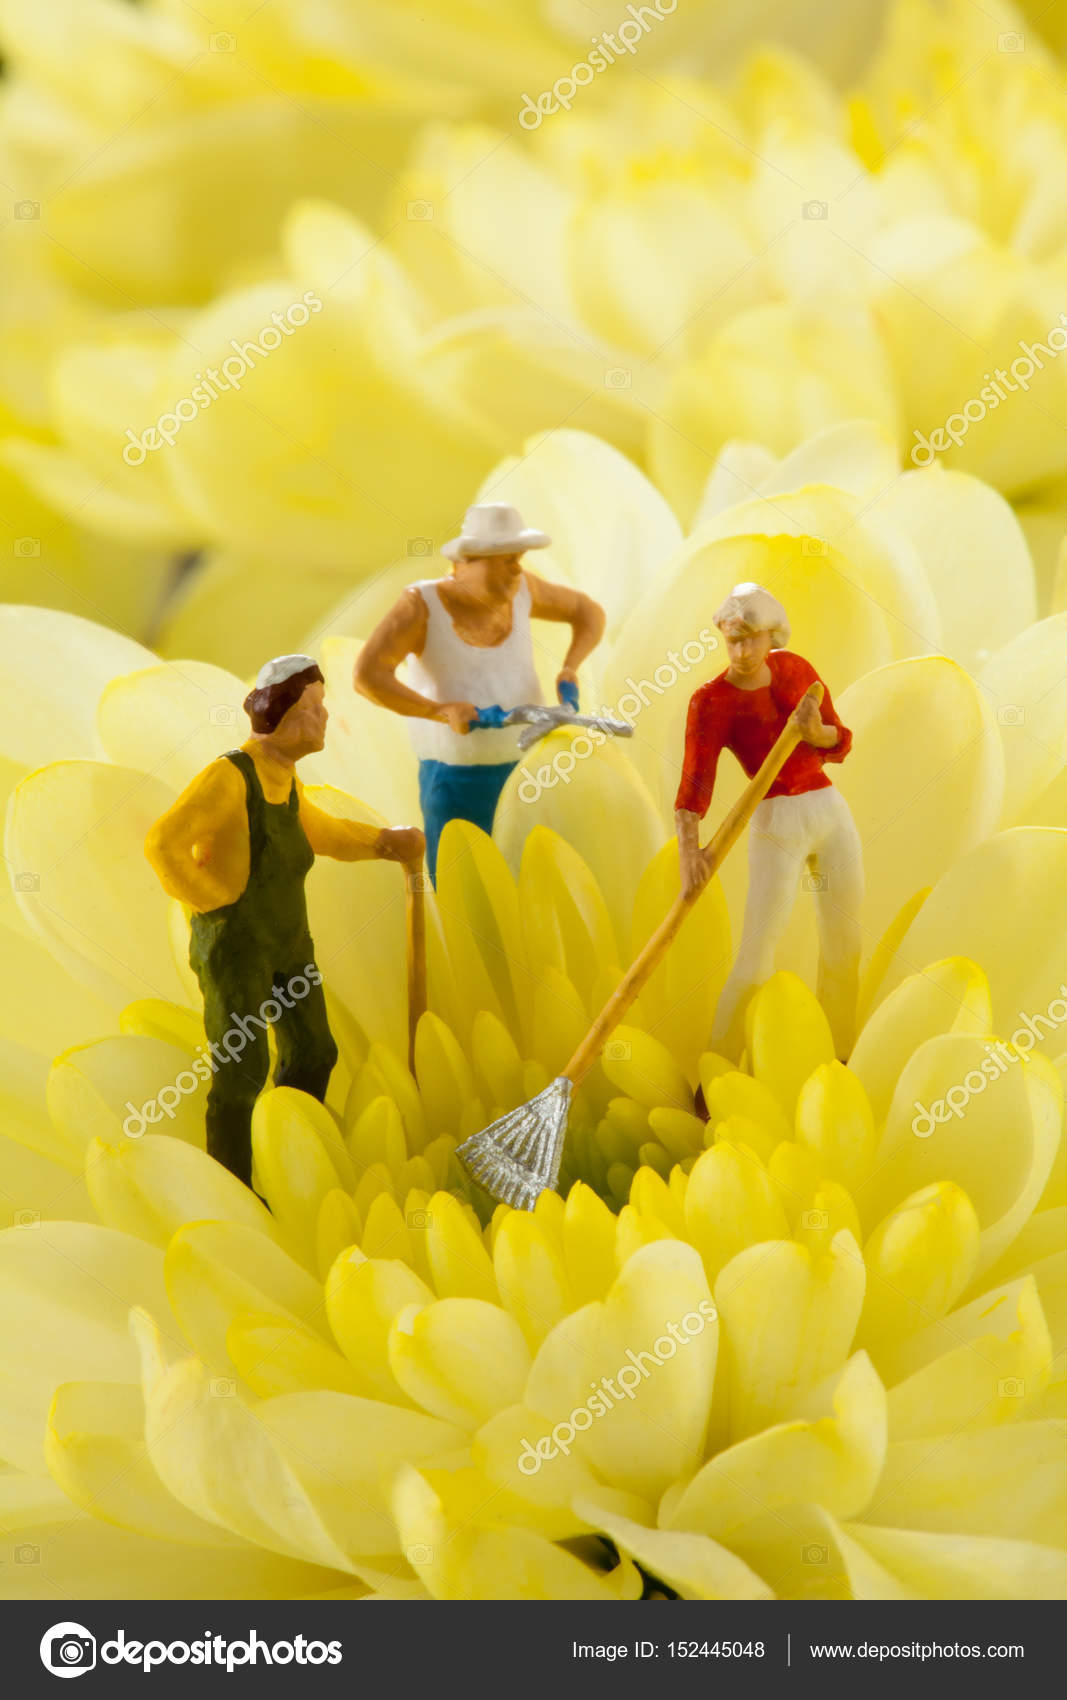 People Are Gardening In A Field Of Yellow Flowers Stock Photo